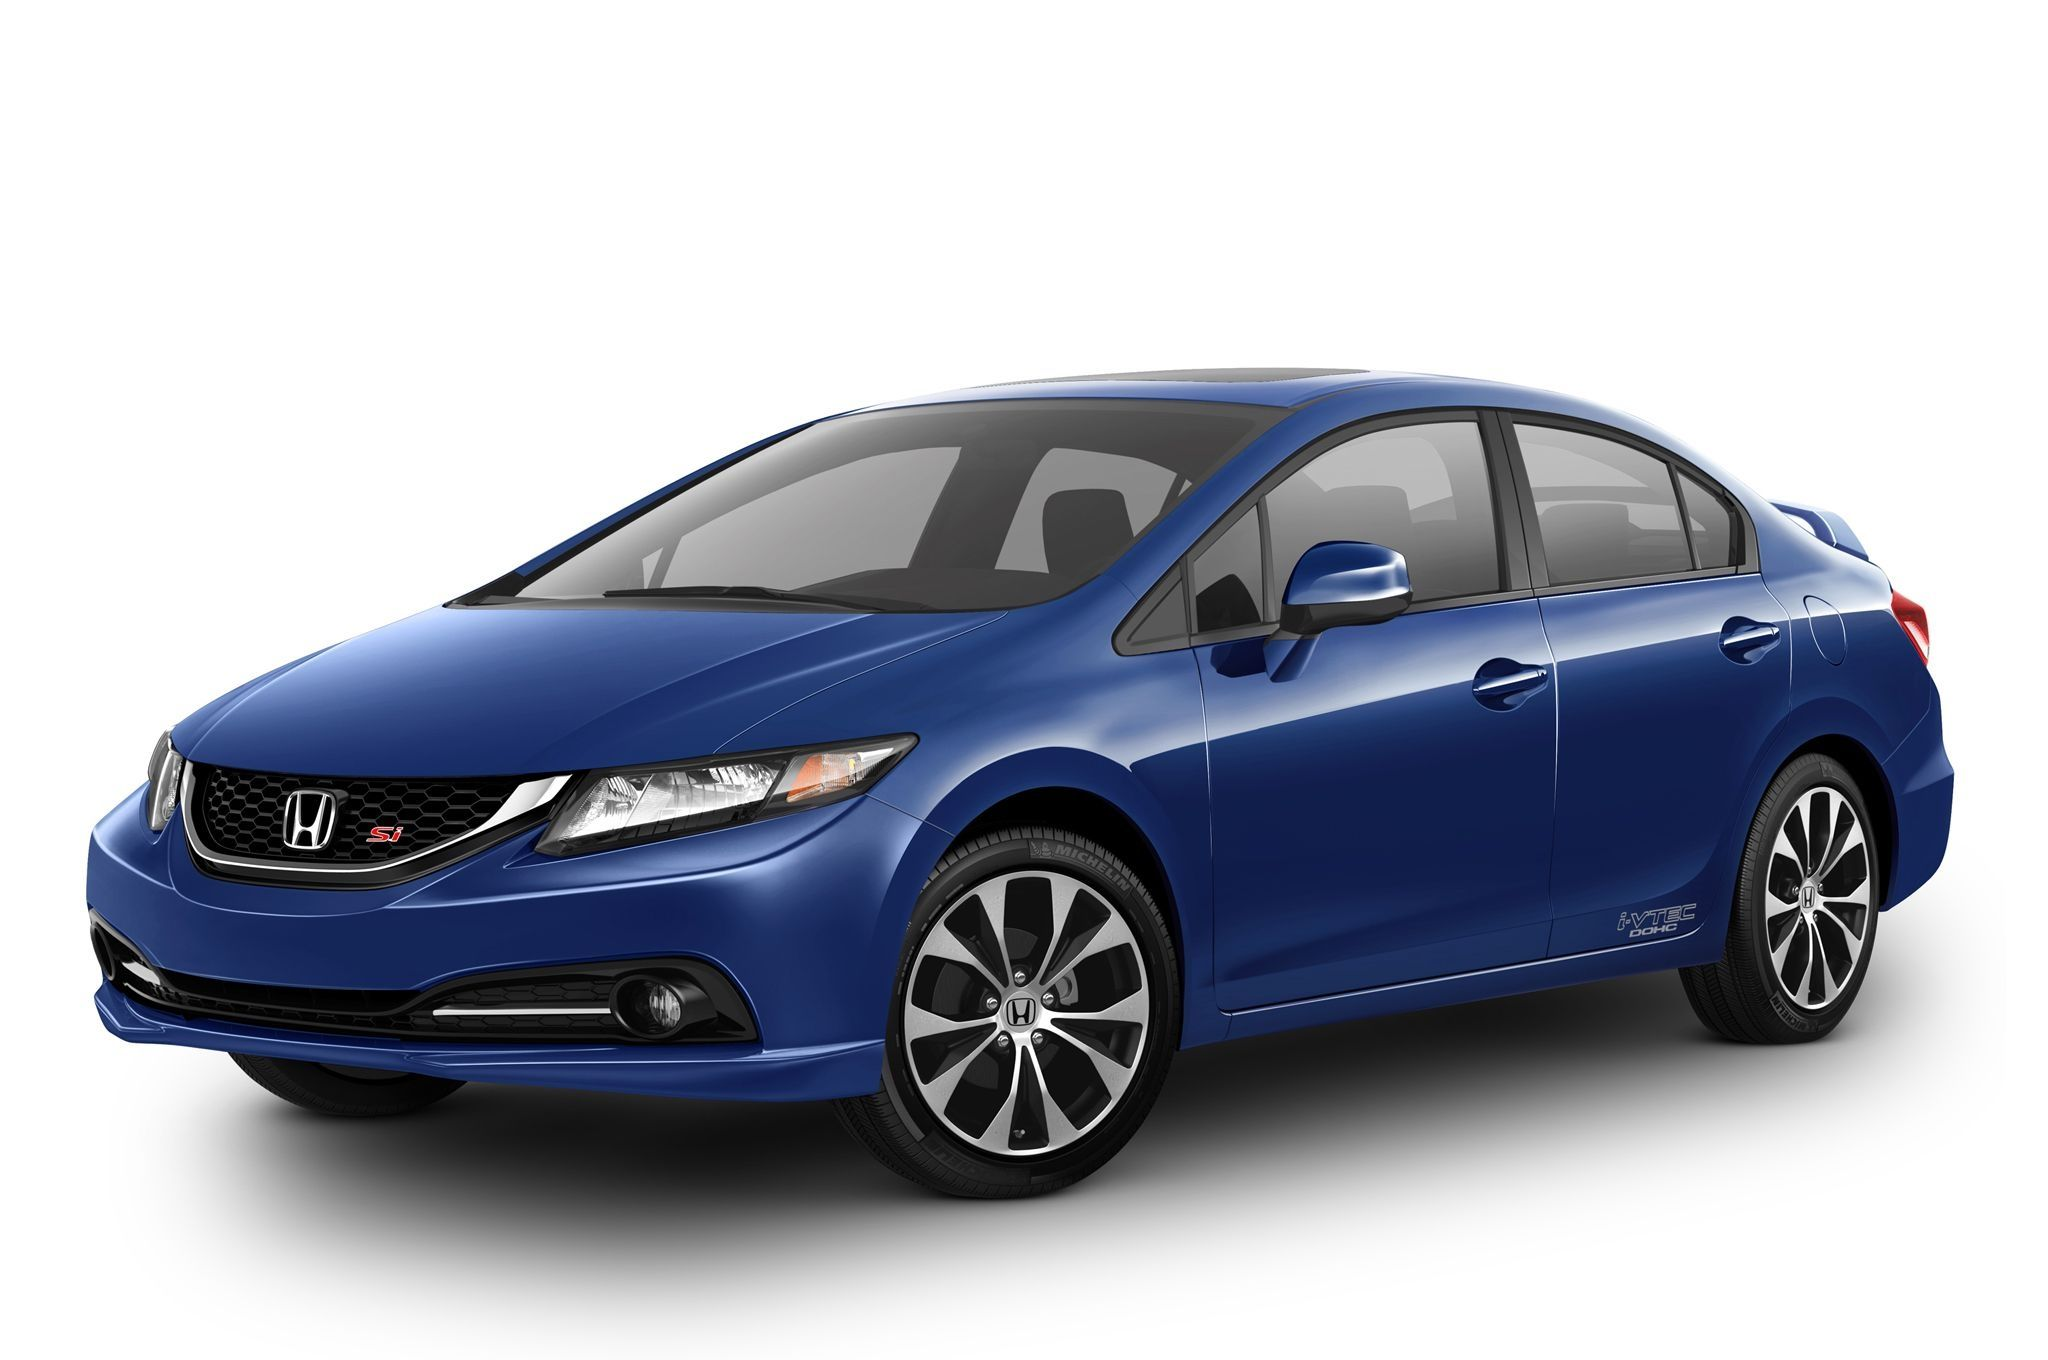 2019 Honda Civic Lx Specs and REview Civic sedan, Honda